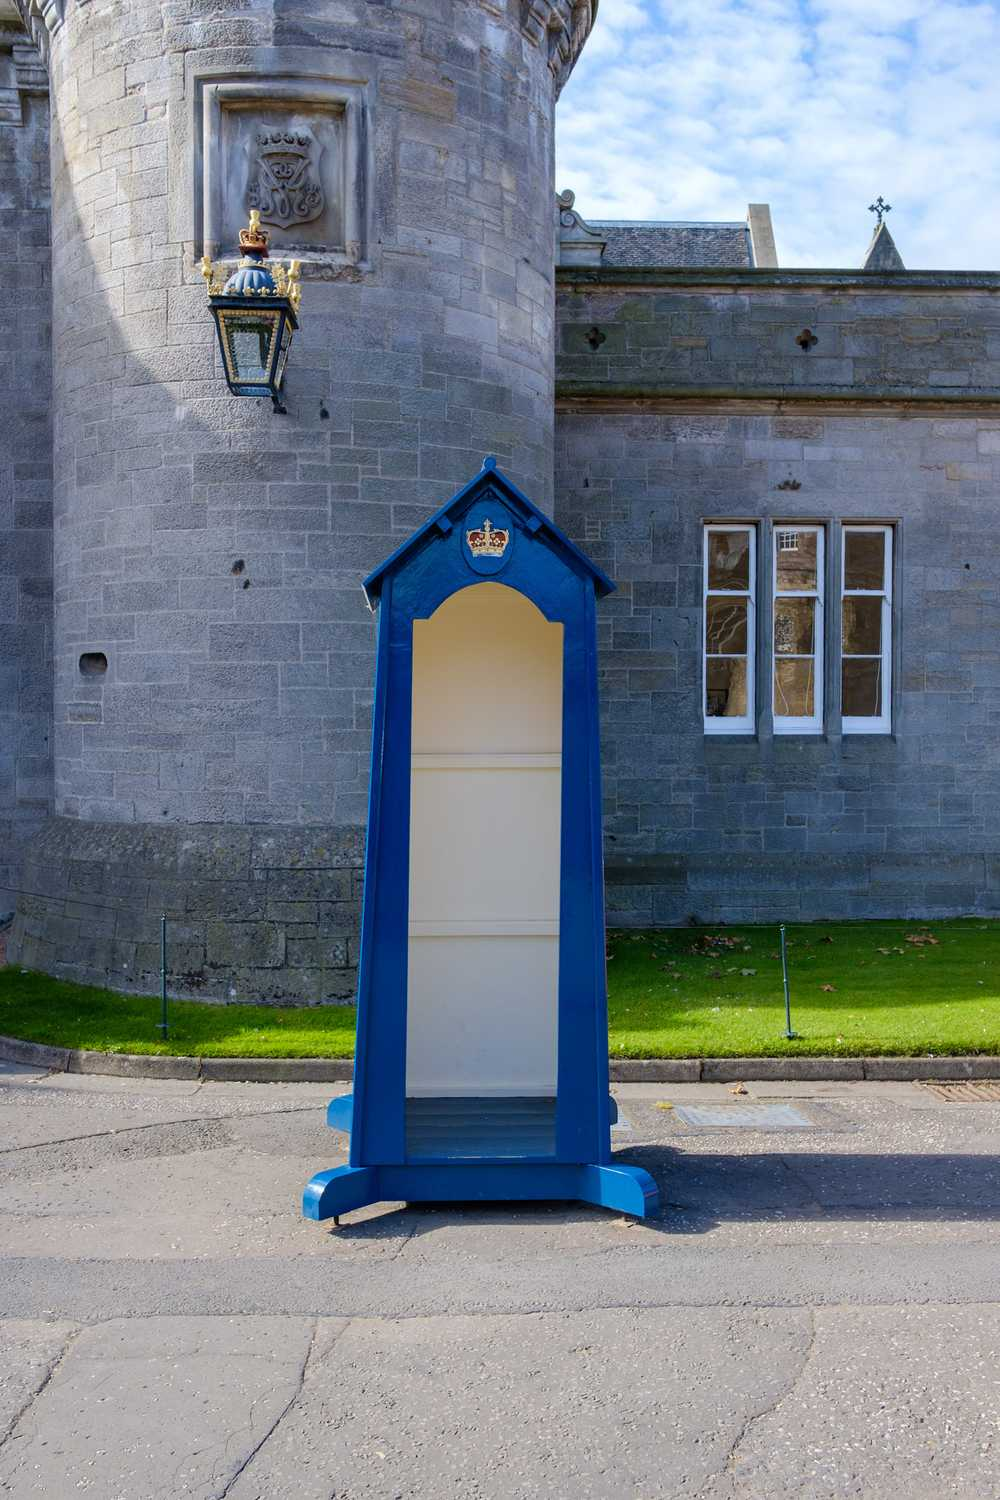 Guard booth, Palace of Holyroodhouse, Edinburgh